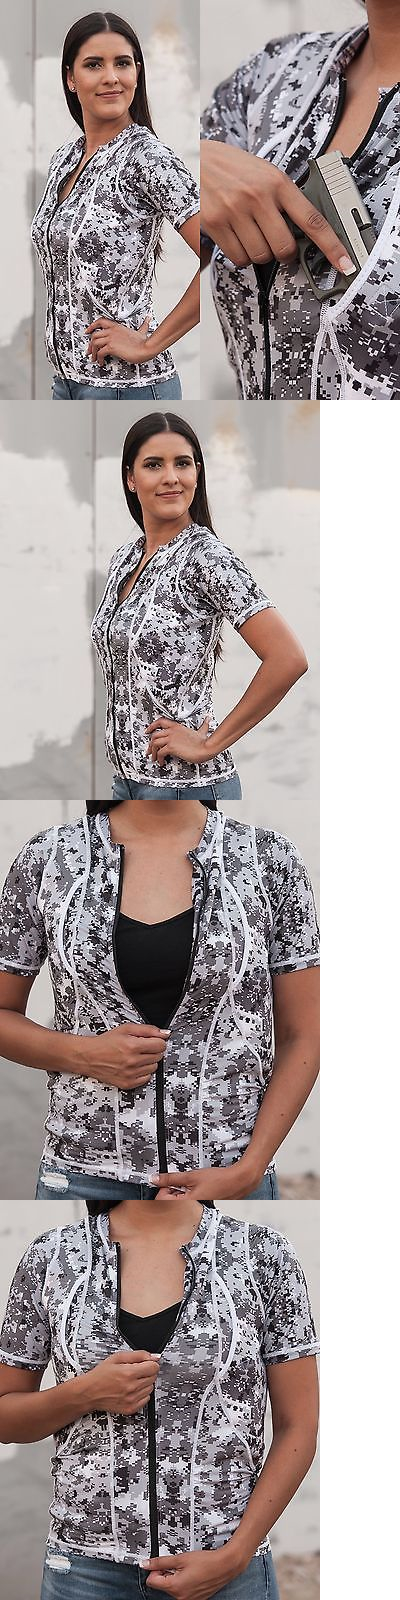 Tactical Clothing 177896 Sale Conceal Weapon Women S